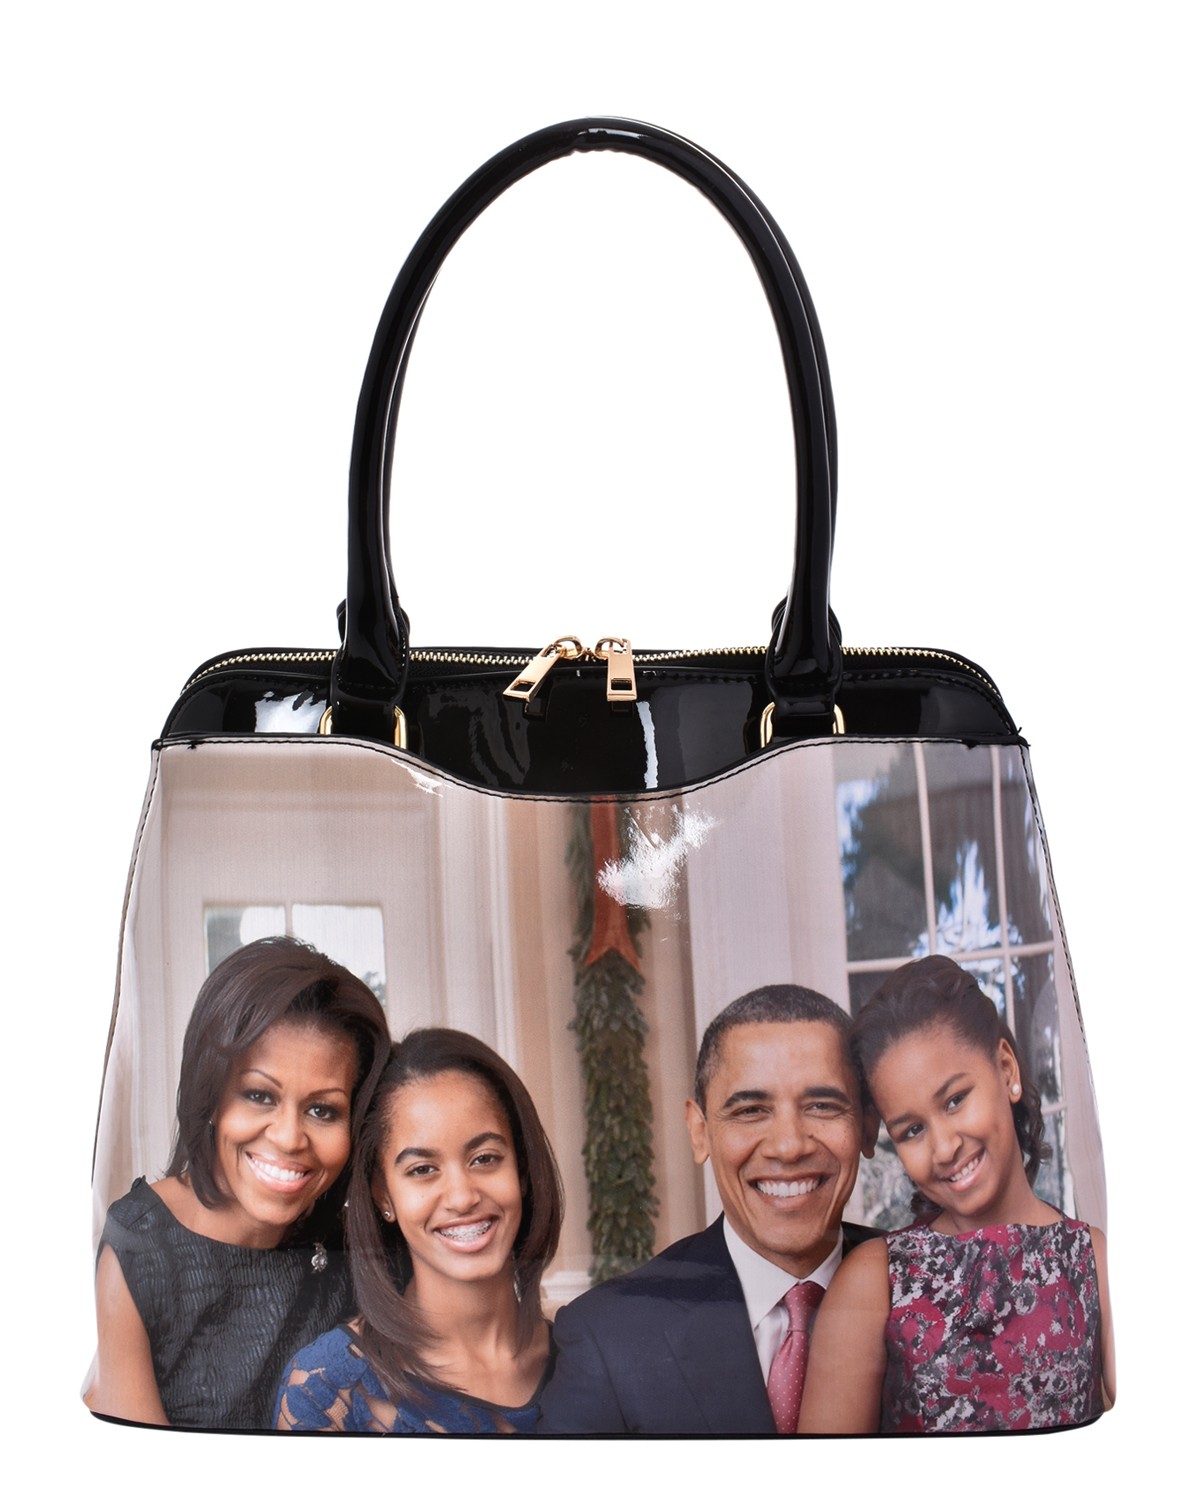 PA00484(MUL)-wholesale-handbag-tote-michelle-malia-sasha-barack-obama-faux-patent-multicolor-graphic-photo-family(0).jpg